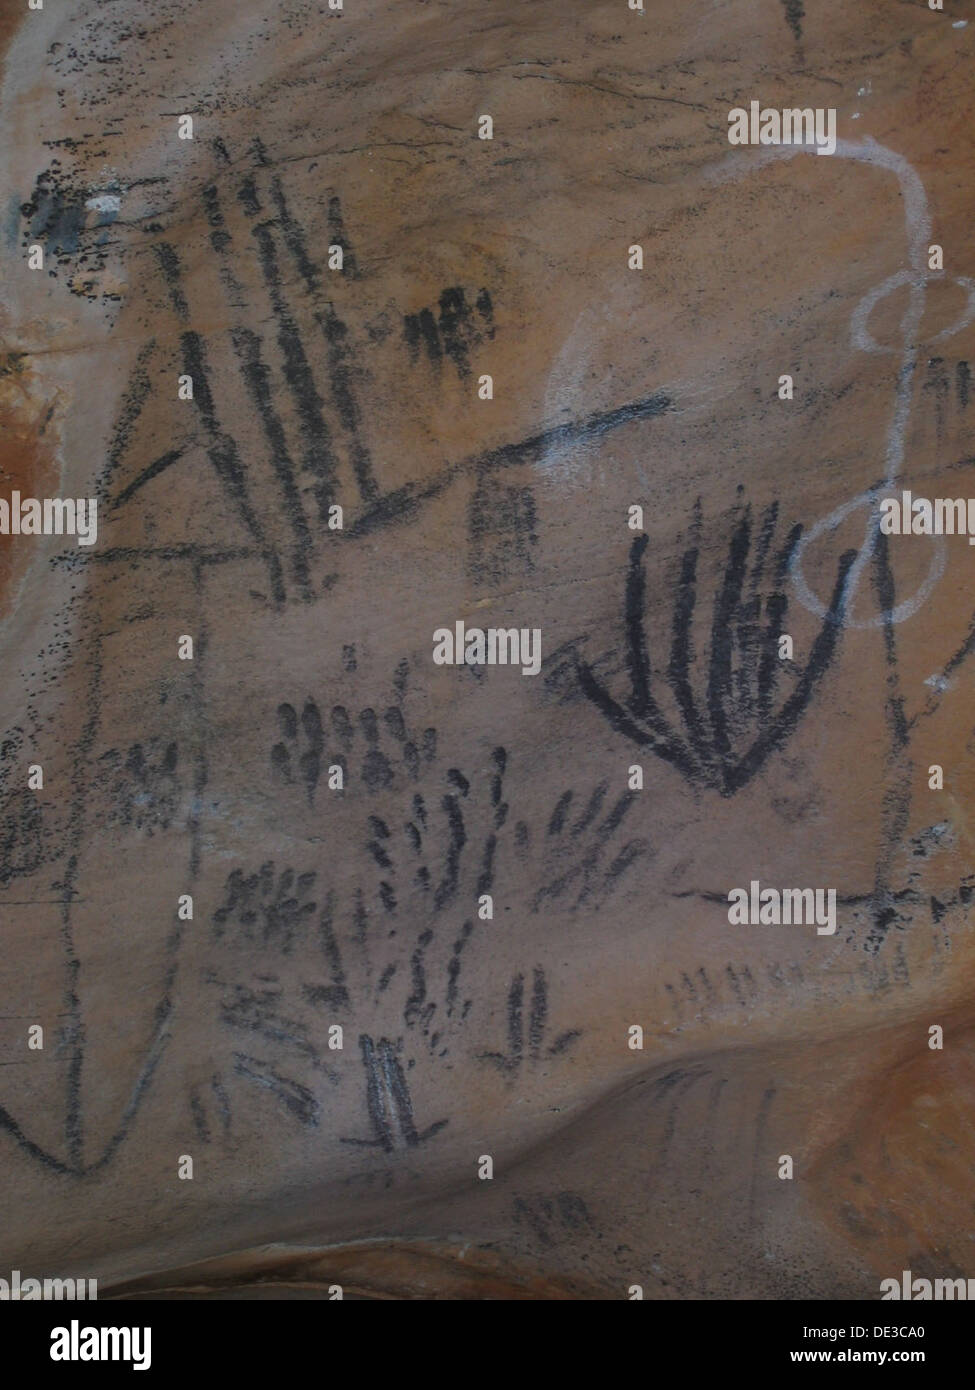 Rock paintings thought to relate to the dreaming or ceremonies associated with the site. - Stock Image